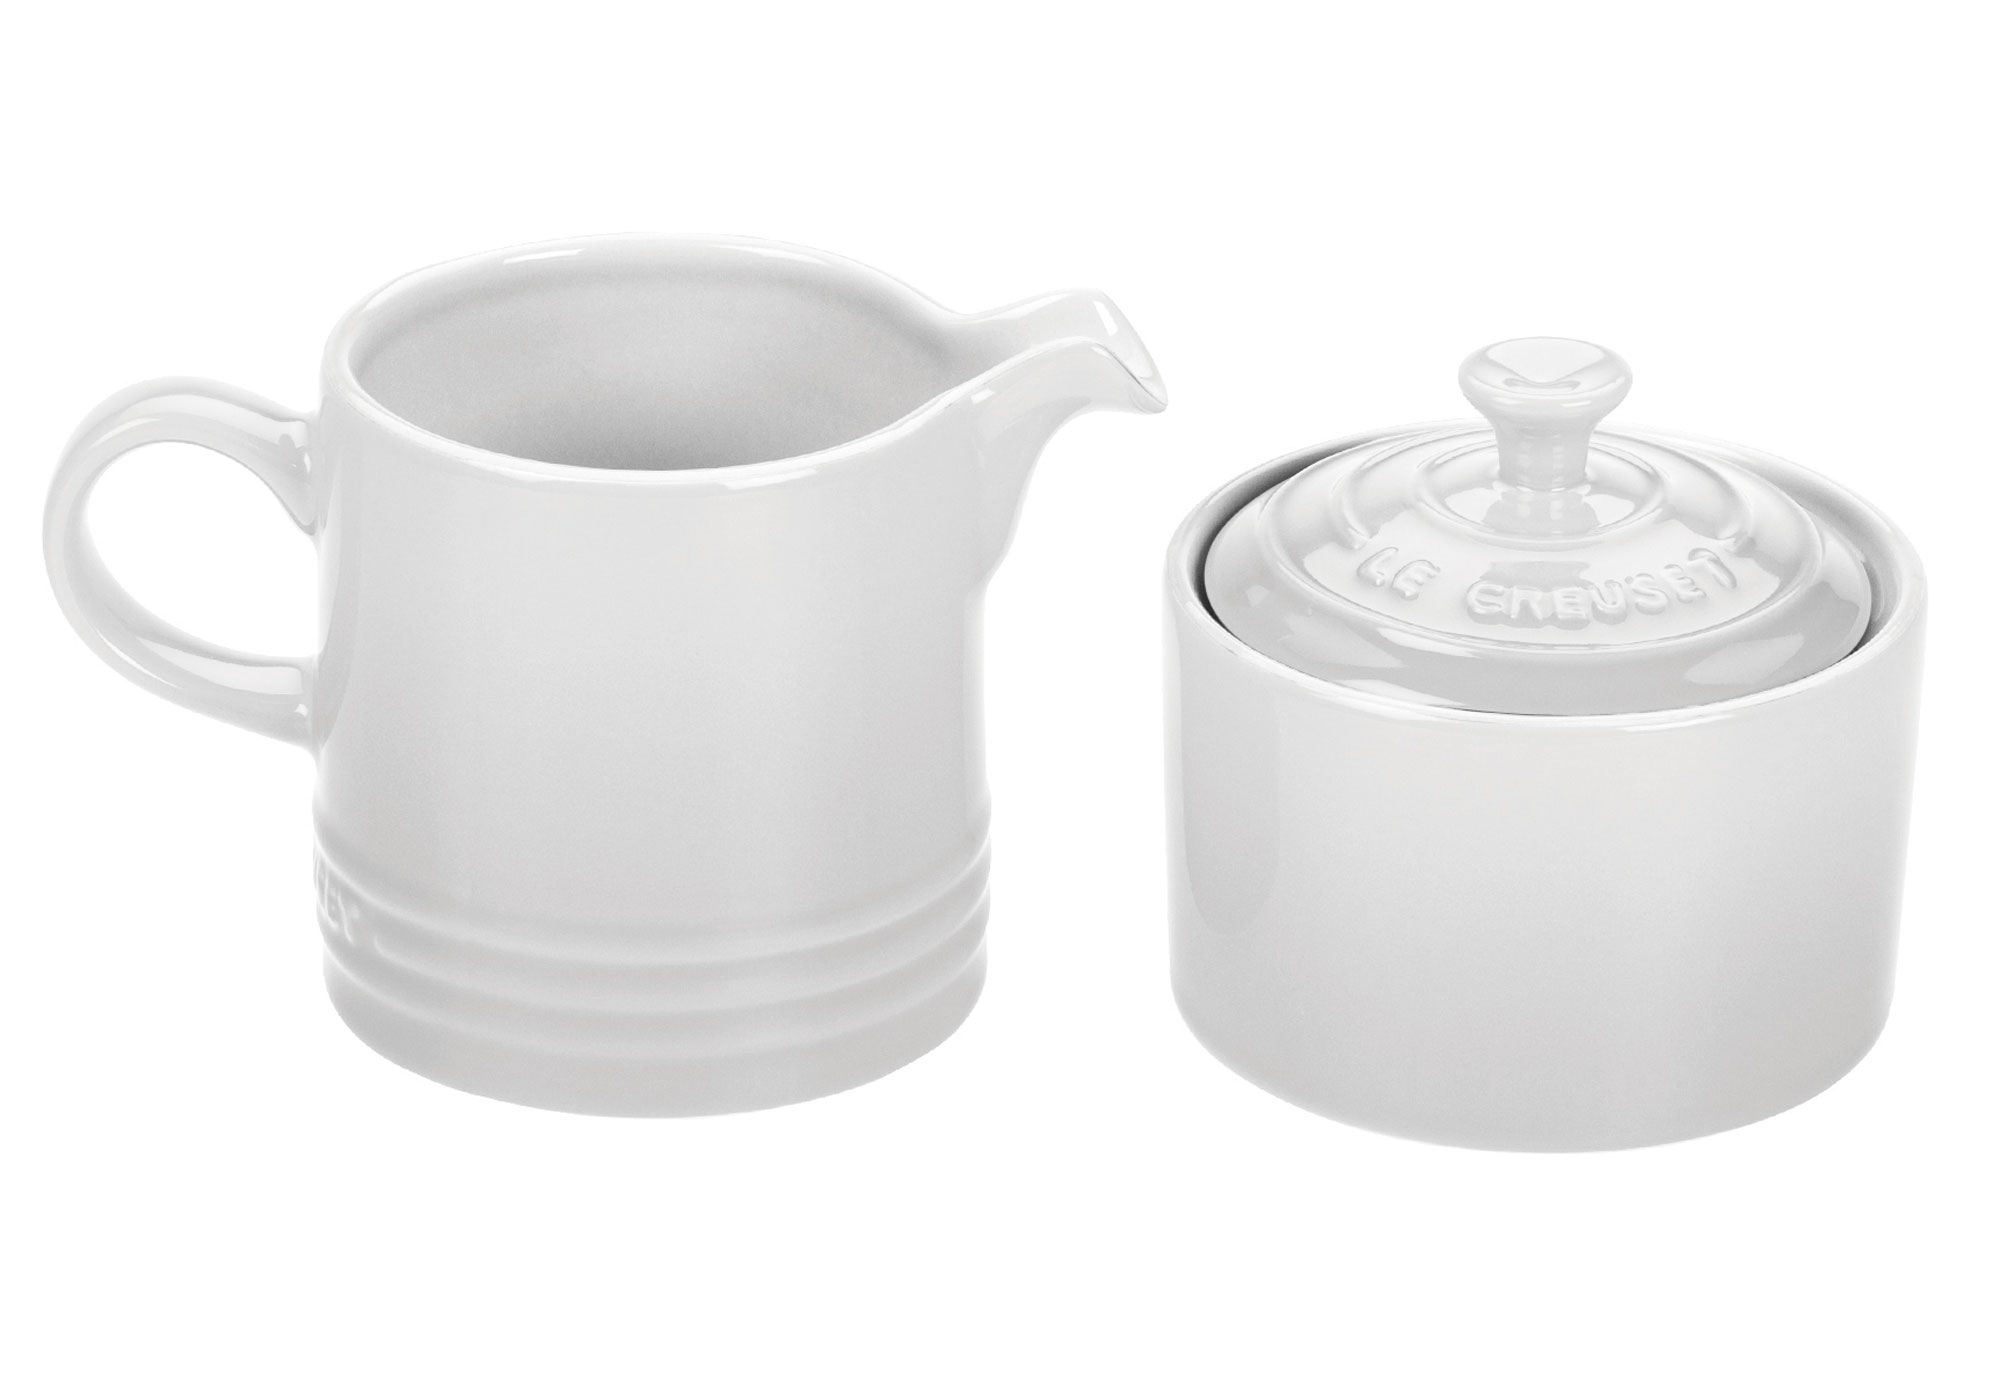 Le Creuset Stoneware Cream Amp Sugar Set White Cutlery